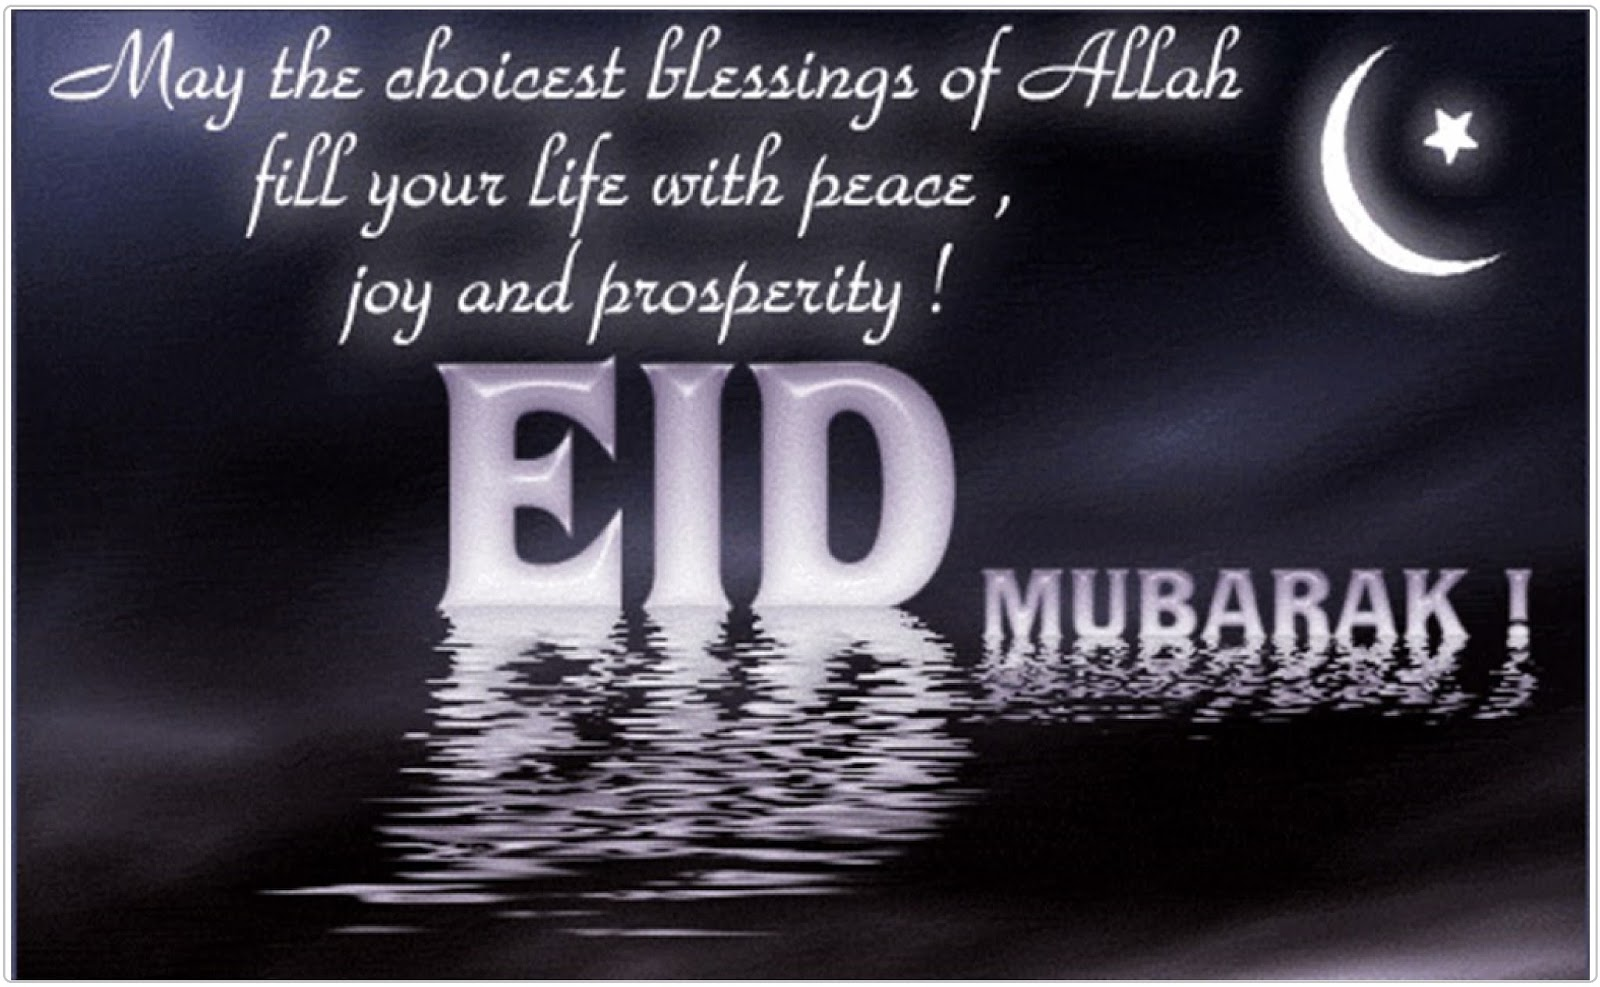 Eid mubarak wishes2018 quotes messages sms greetings status 2018 eid greetings quotes m4hsunfo